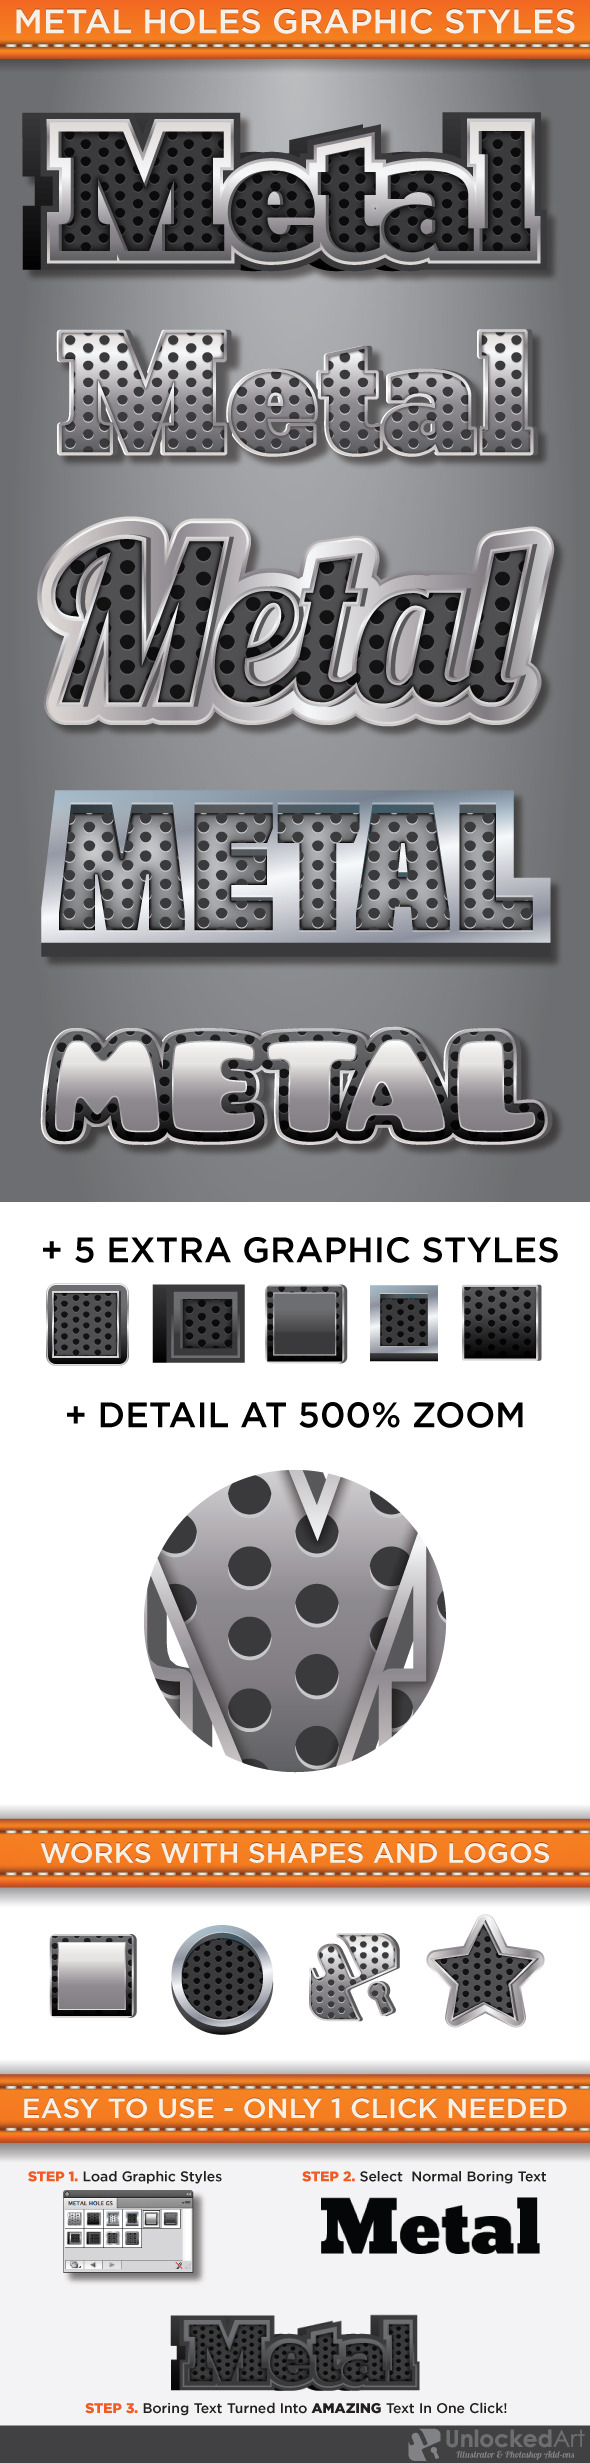 Metal Holes Graphic Style - Styles Illustrator